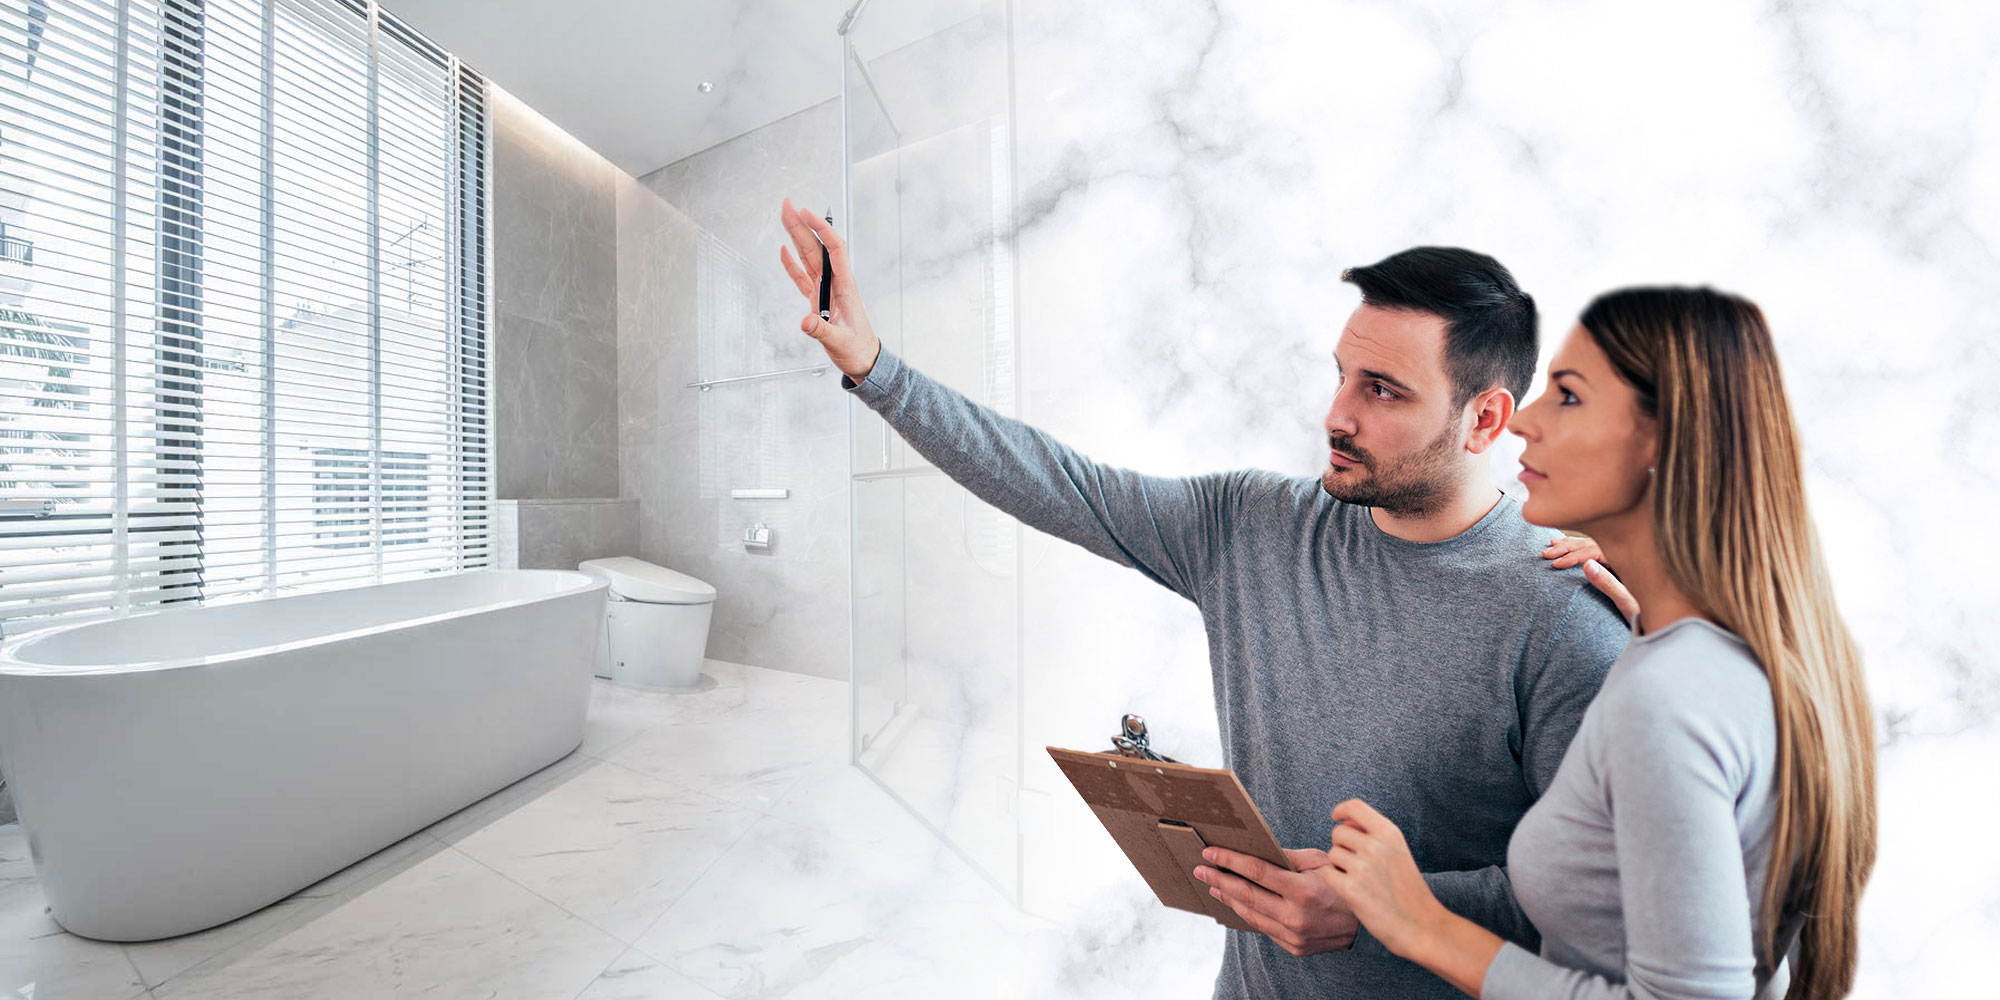 Can you renovate a bathroom under 10k?